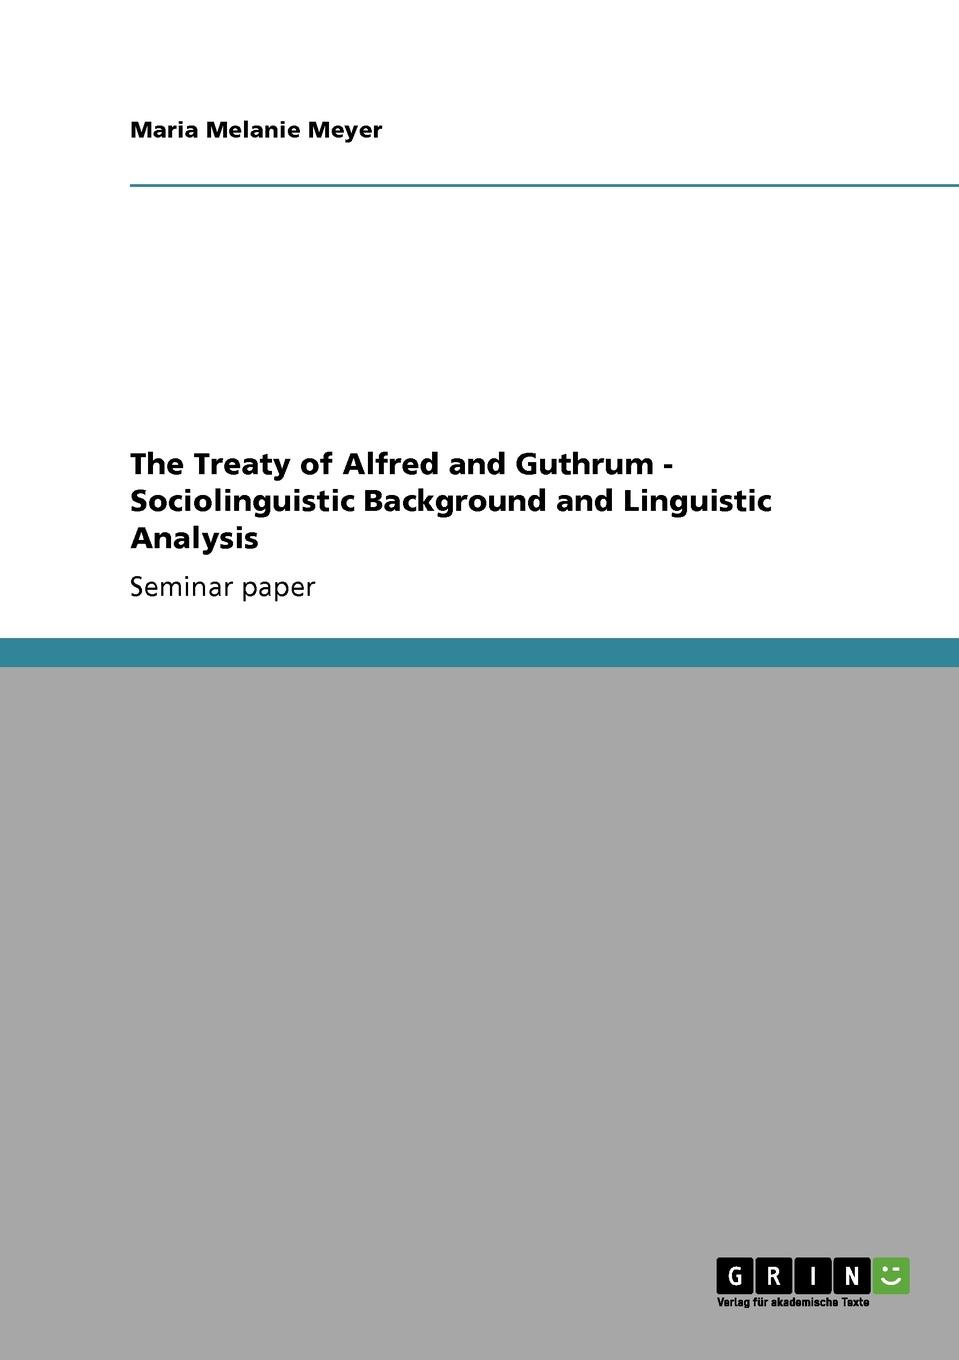 Maria Melanie Meyer The Treaty of Alfred and Guthrum - Sociolinguistic Background and Linguistic Analysis oxford dictionary of current english